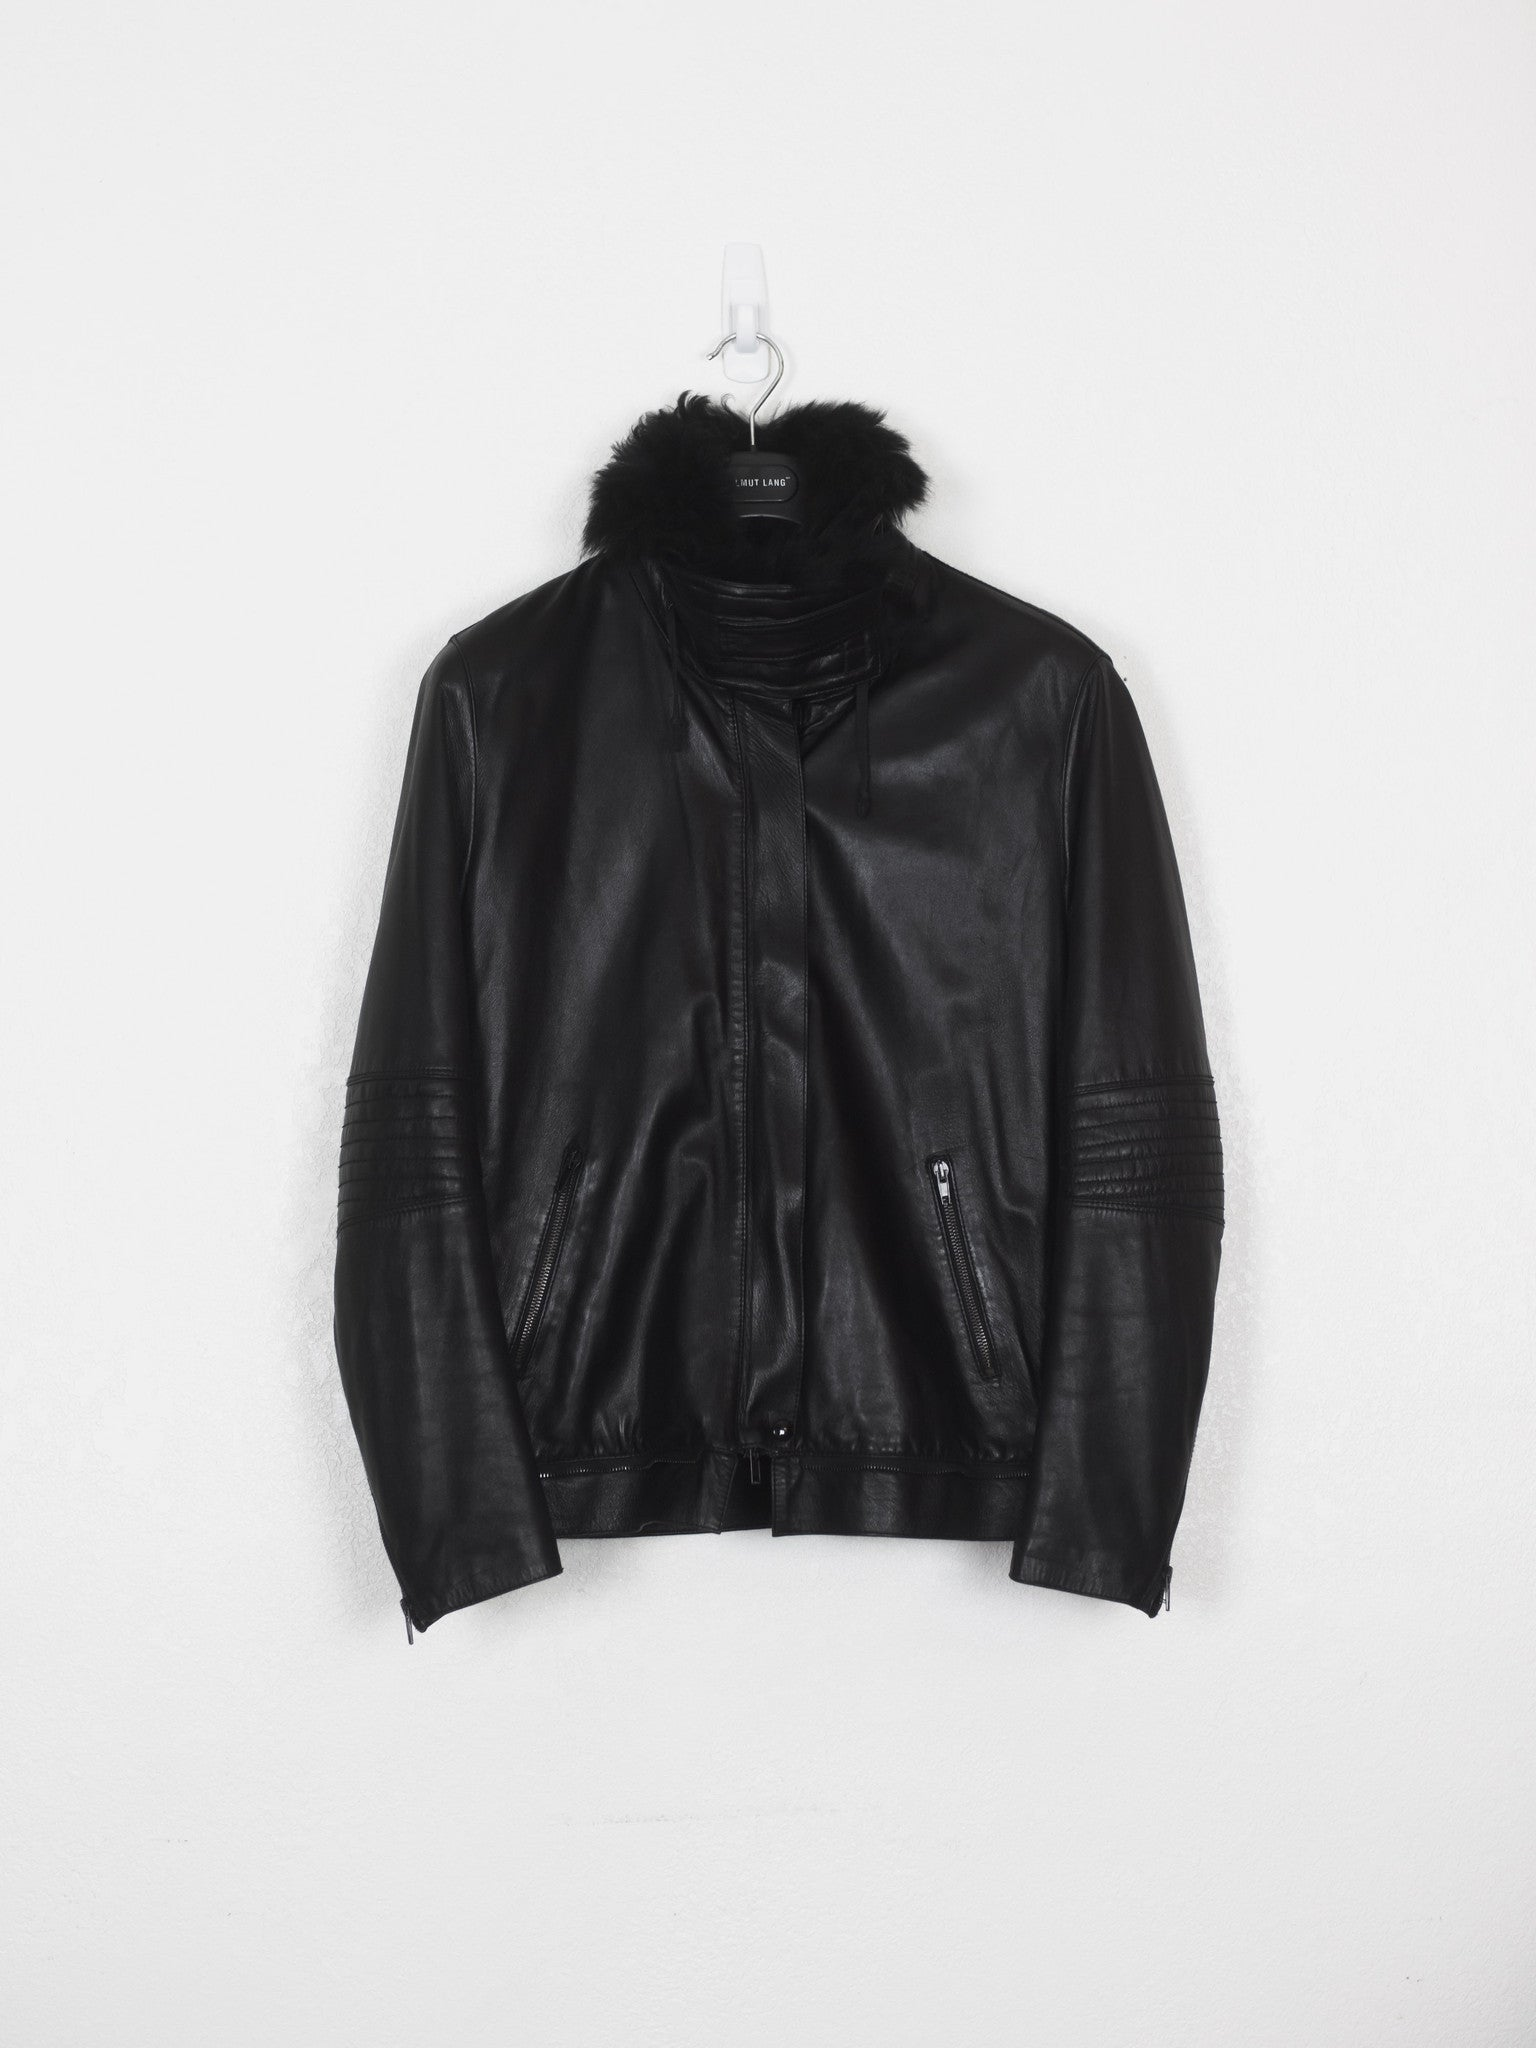 Helmut Lang Lamb Leather Astro Biker Jacket